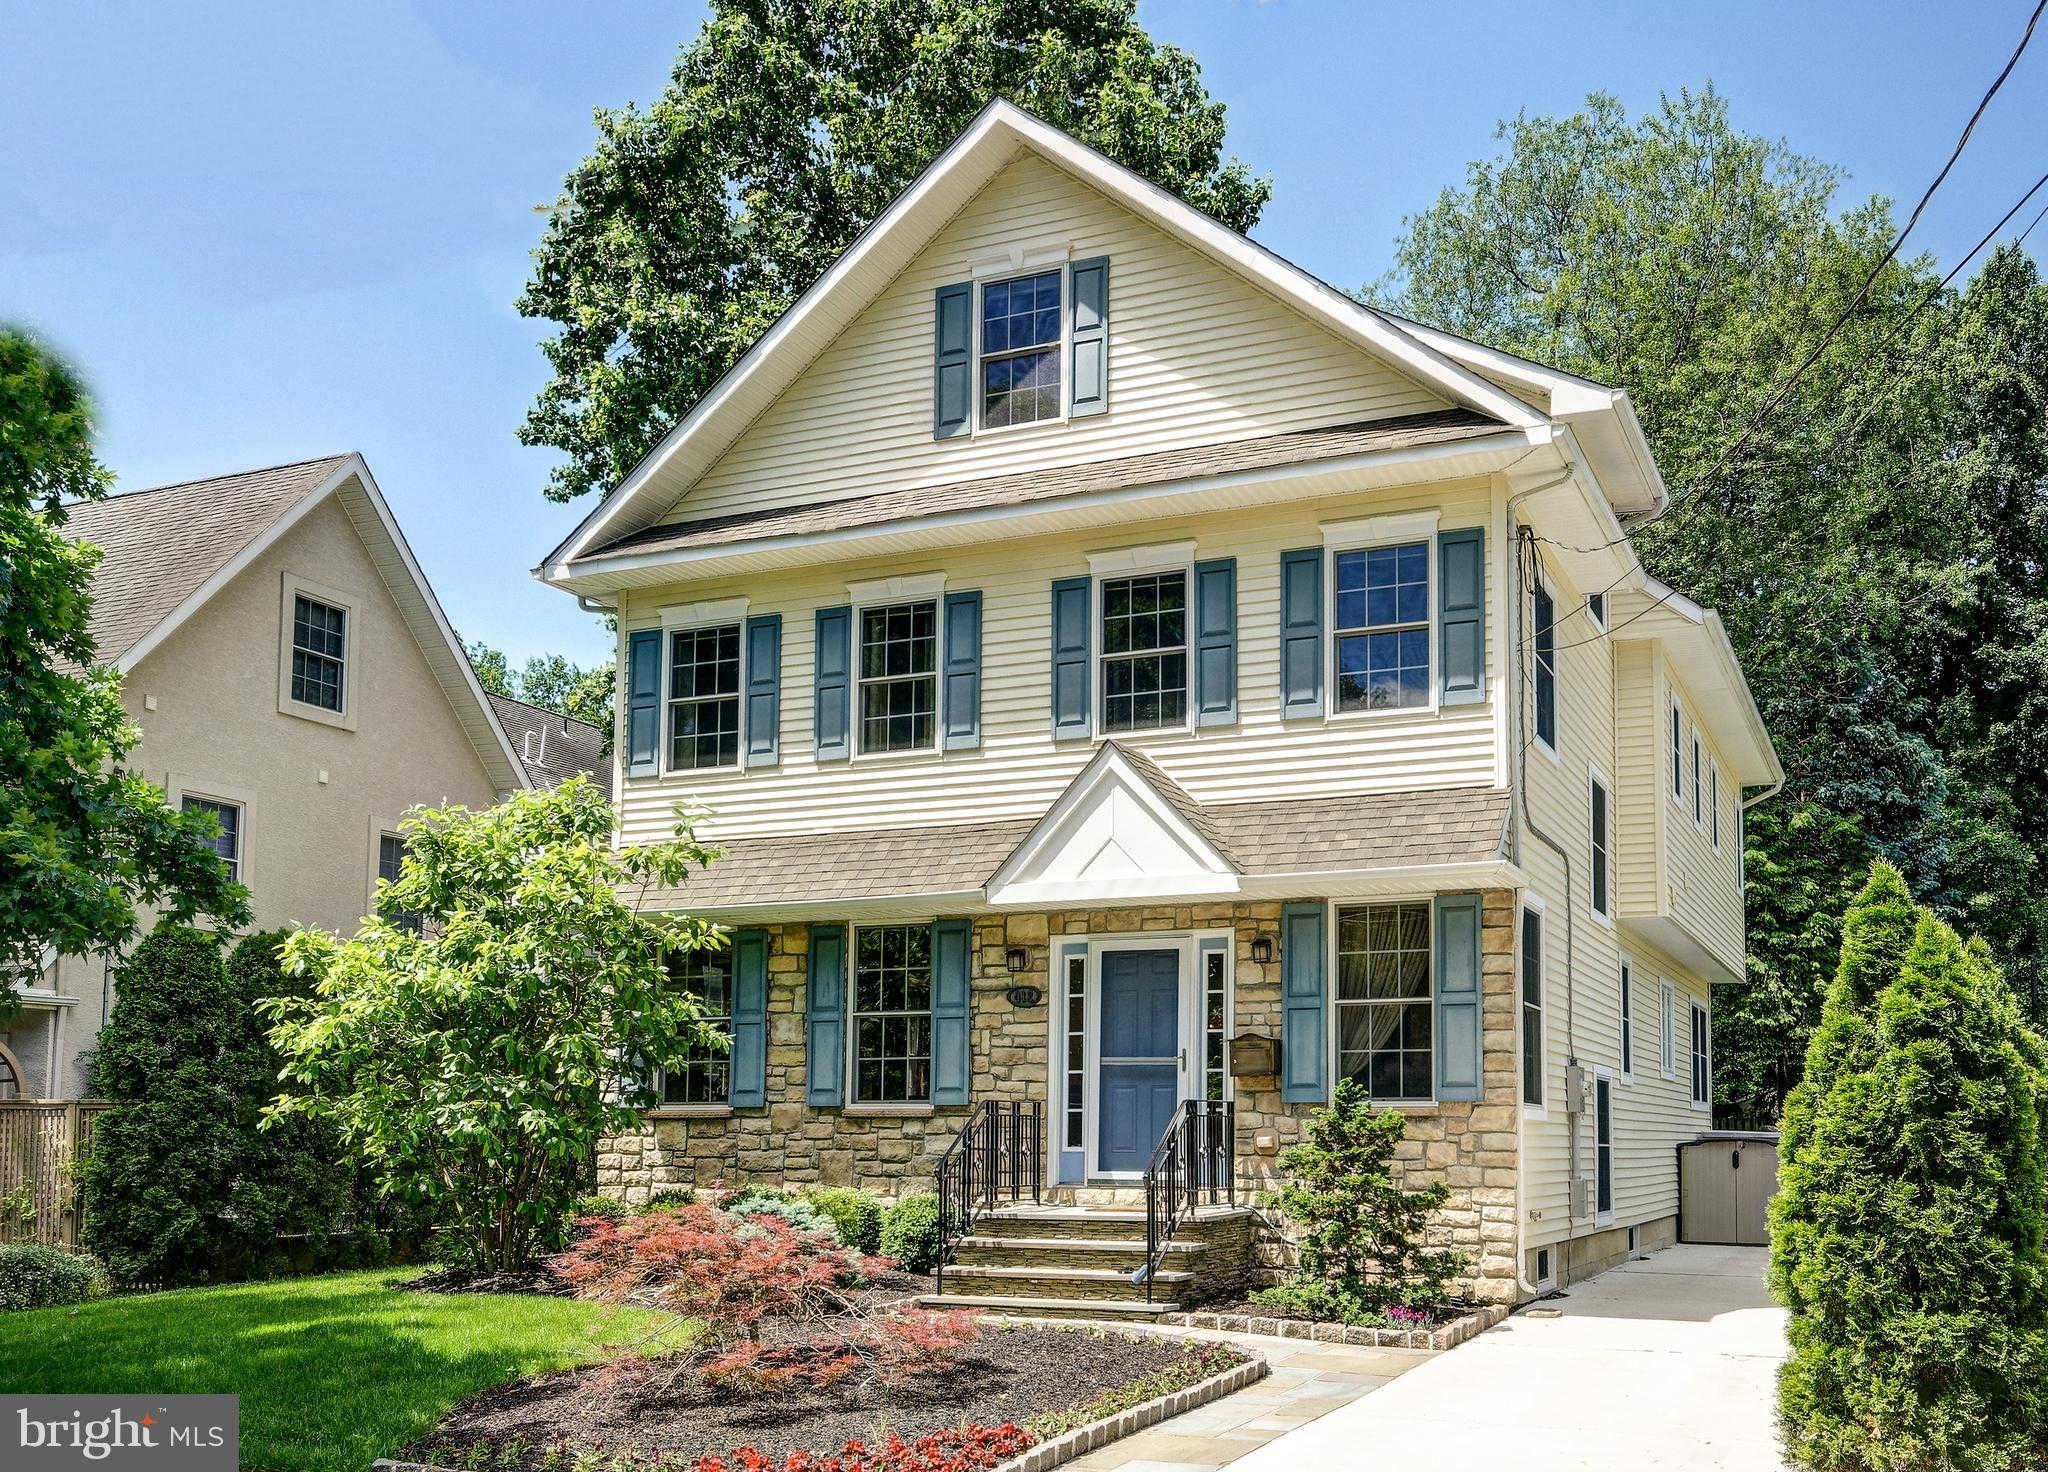 412 Spruce Street, Haddonfield, NJ 08033 now has a new price of $729,900!